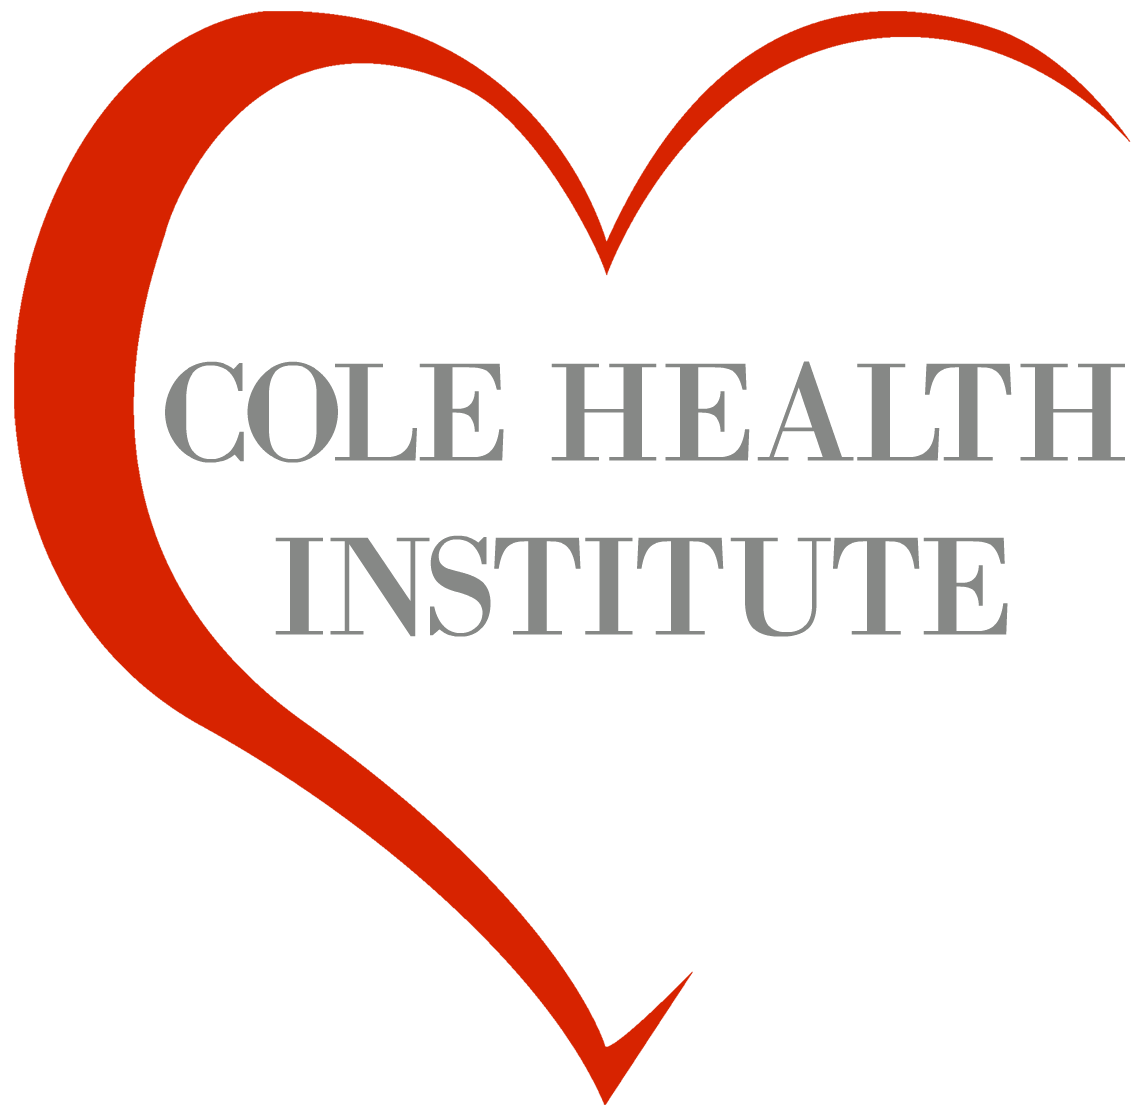 Cole Health Institute - Functional Medicine Clinic